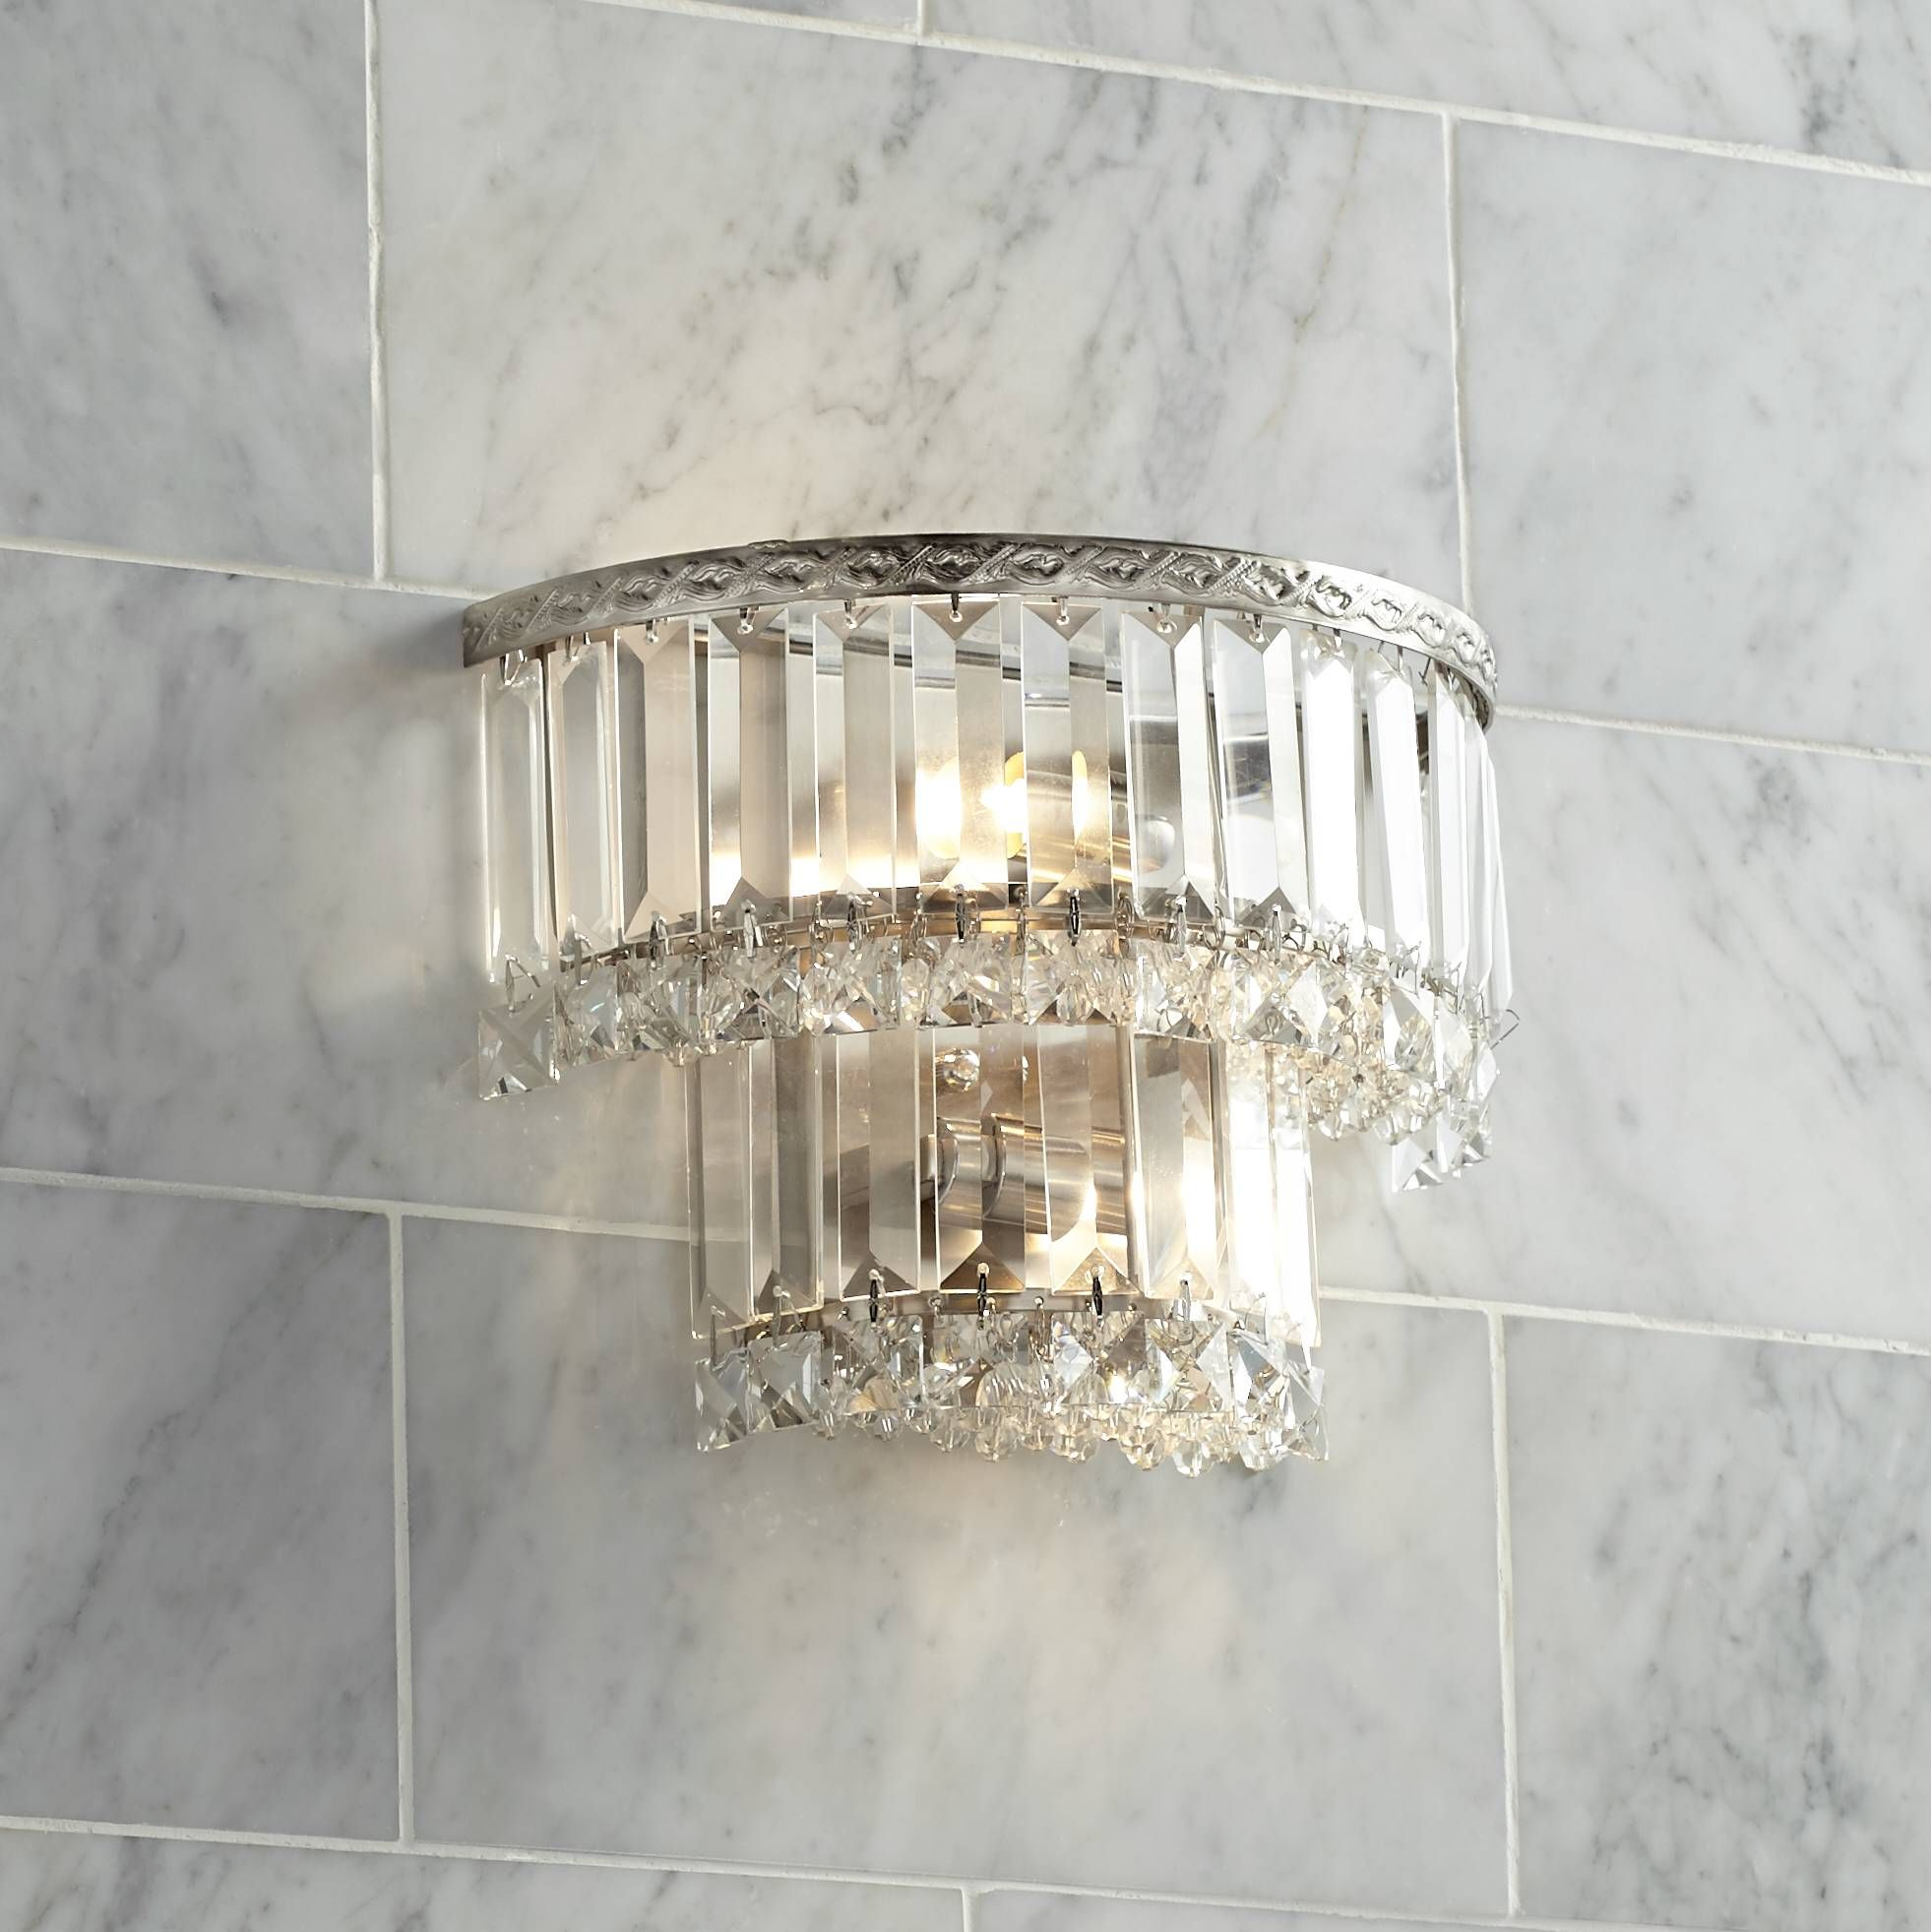 Magnificence Satin Nickel 10 Wide Crystal Wall Sconce Wall